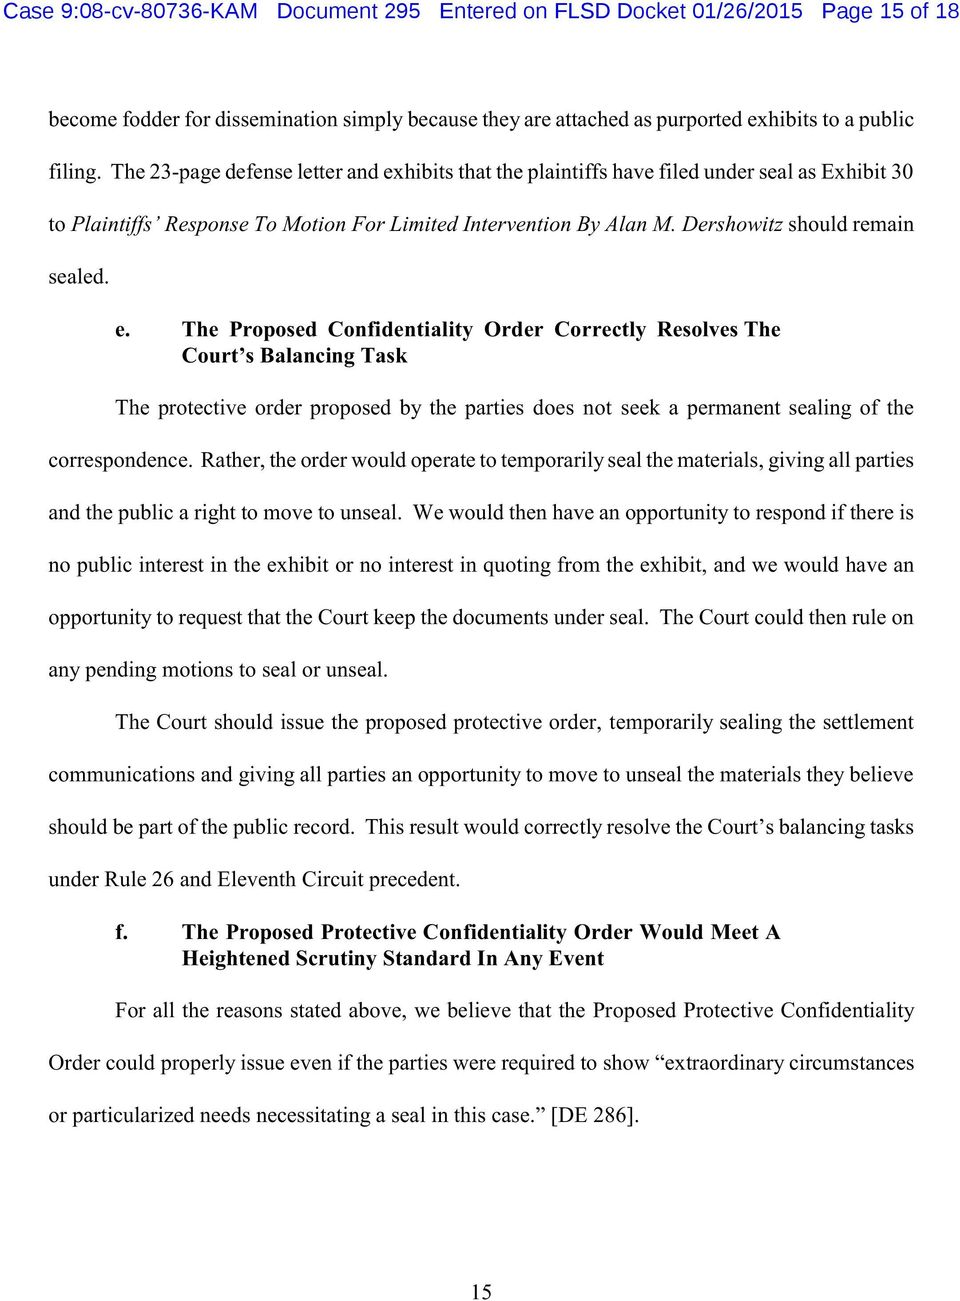 hibits that the plaintiffs have filed under seal as Exhibit 30 to Plaintiffs Response To Motion For Limited Intervention By Alan M. Dershowitz should remain sealed. e.